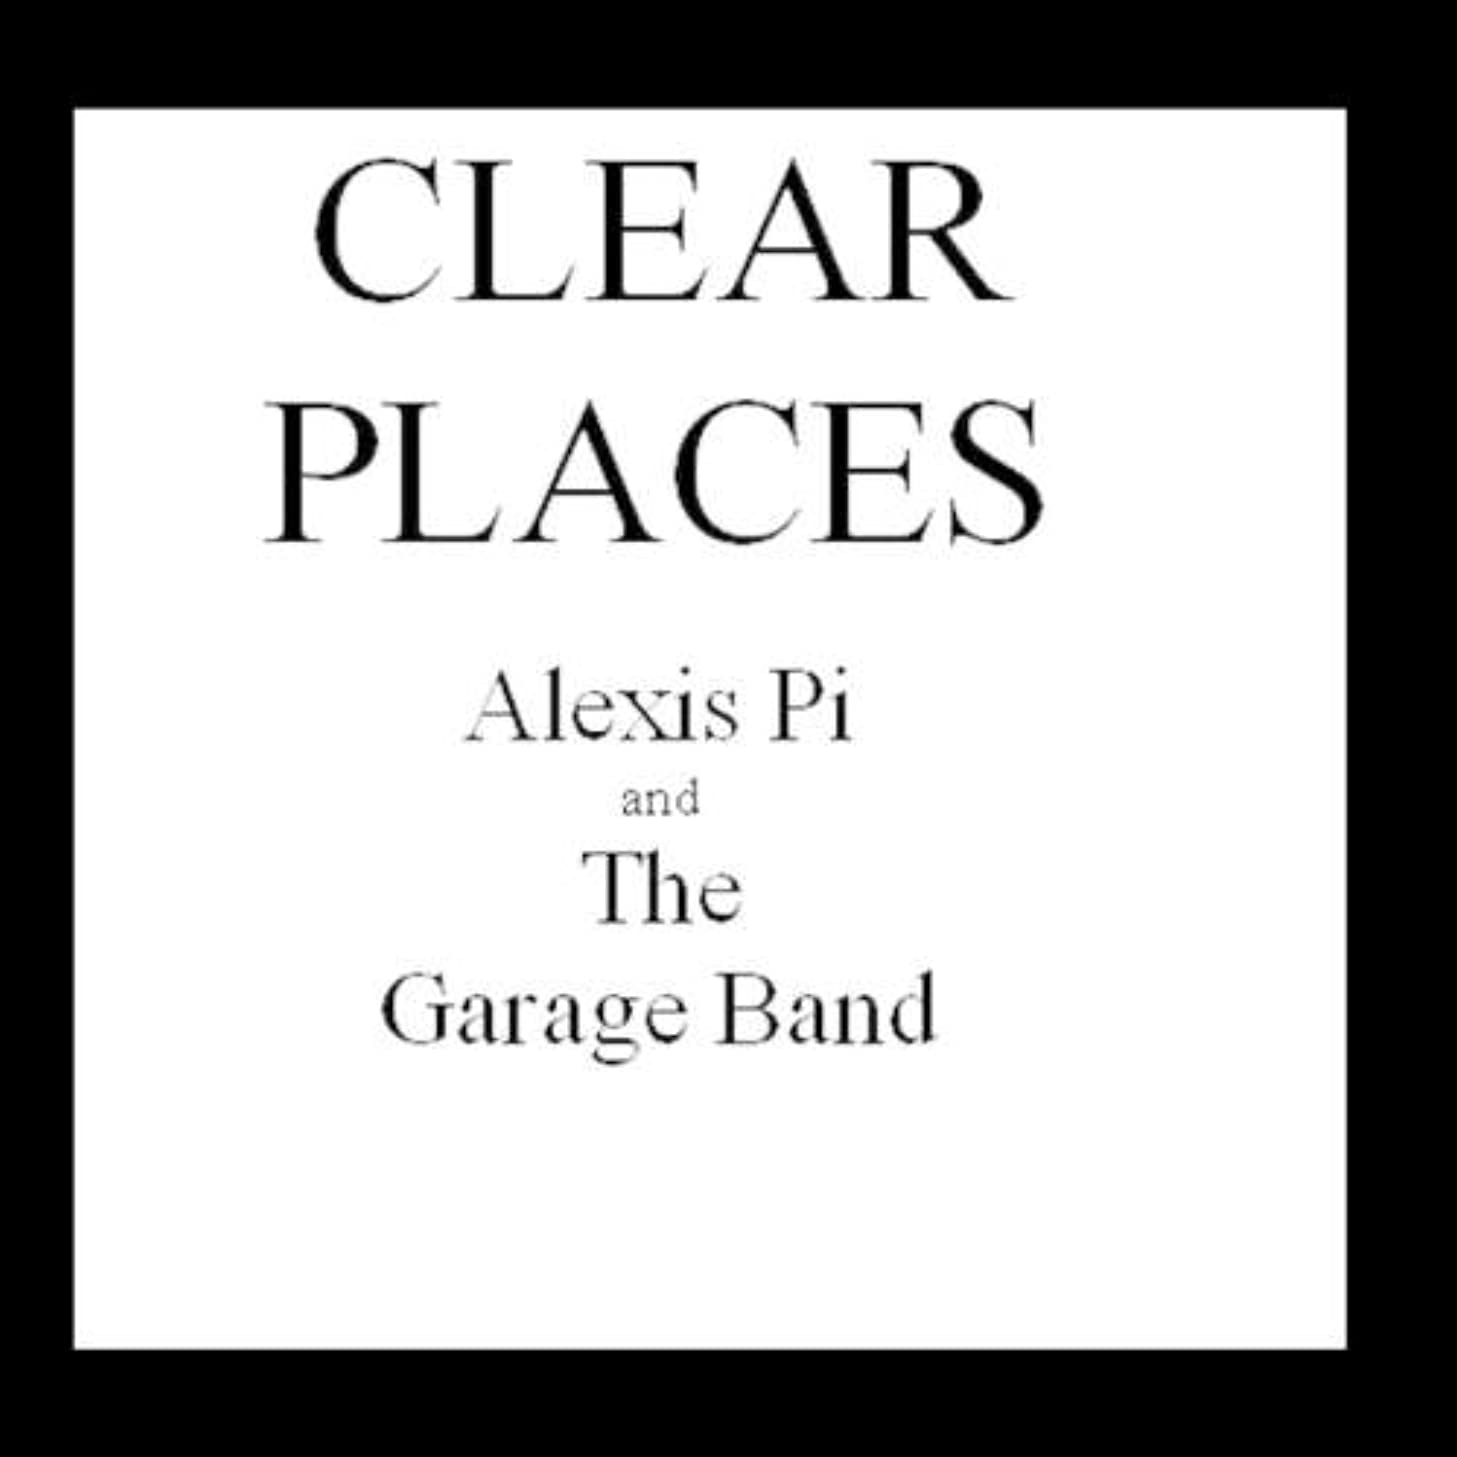 Clear Places